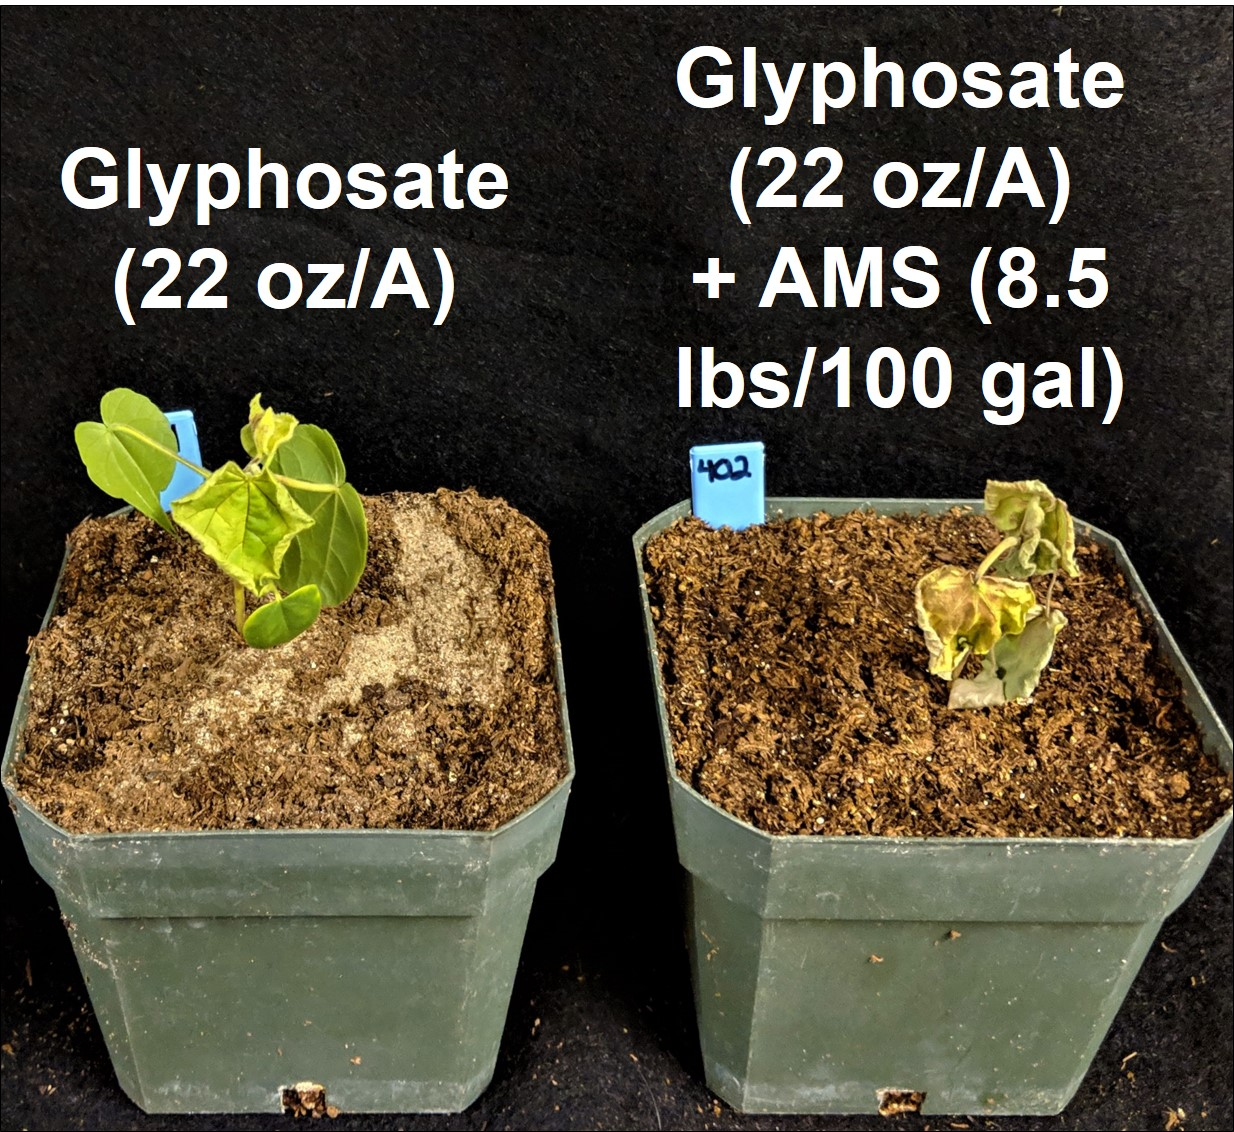 Figure 4. Effect of Ammonium Sulfate (AMS) on velvetleaf control with glyphosate in the greenhouse.